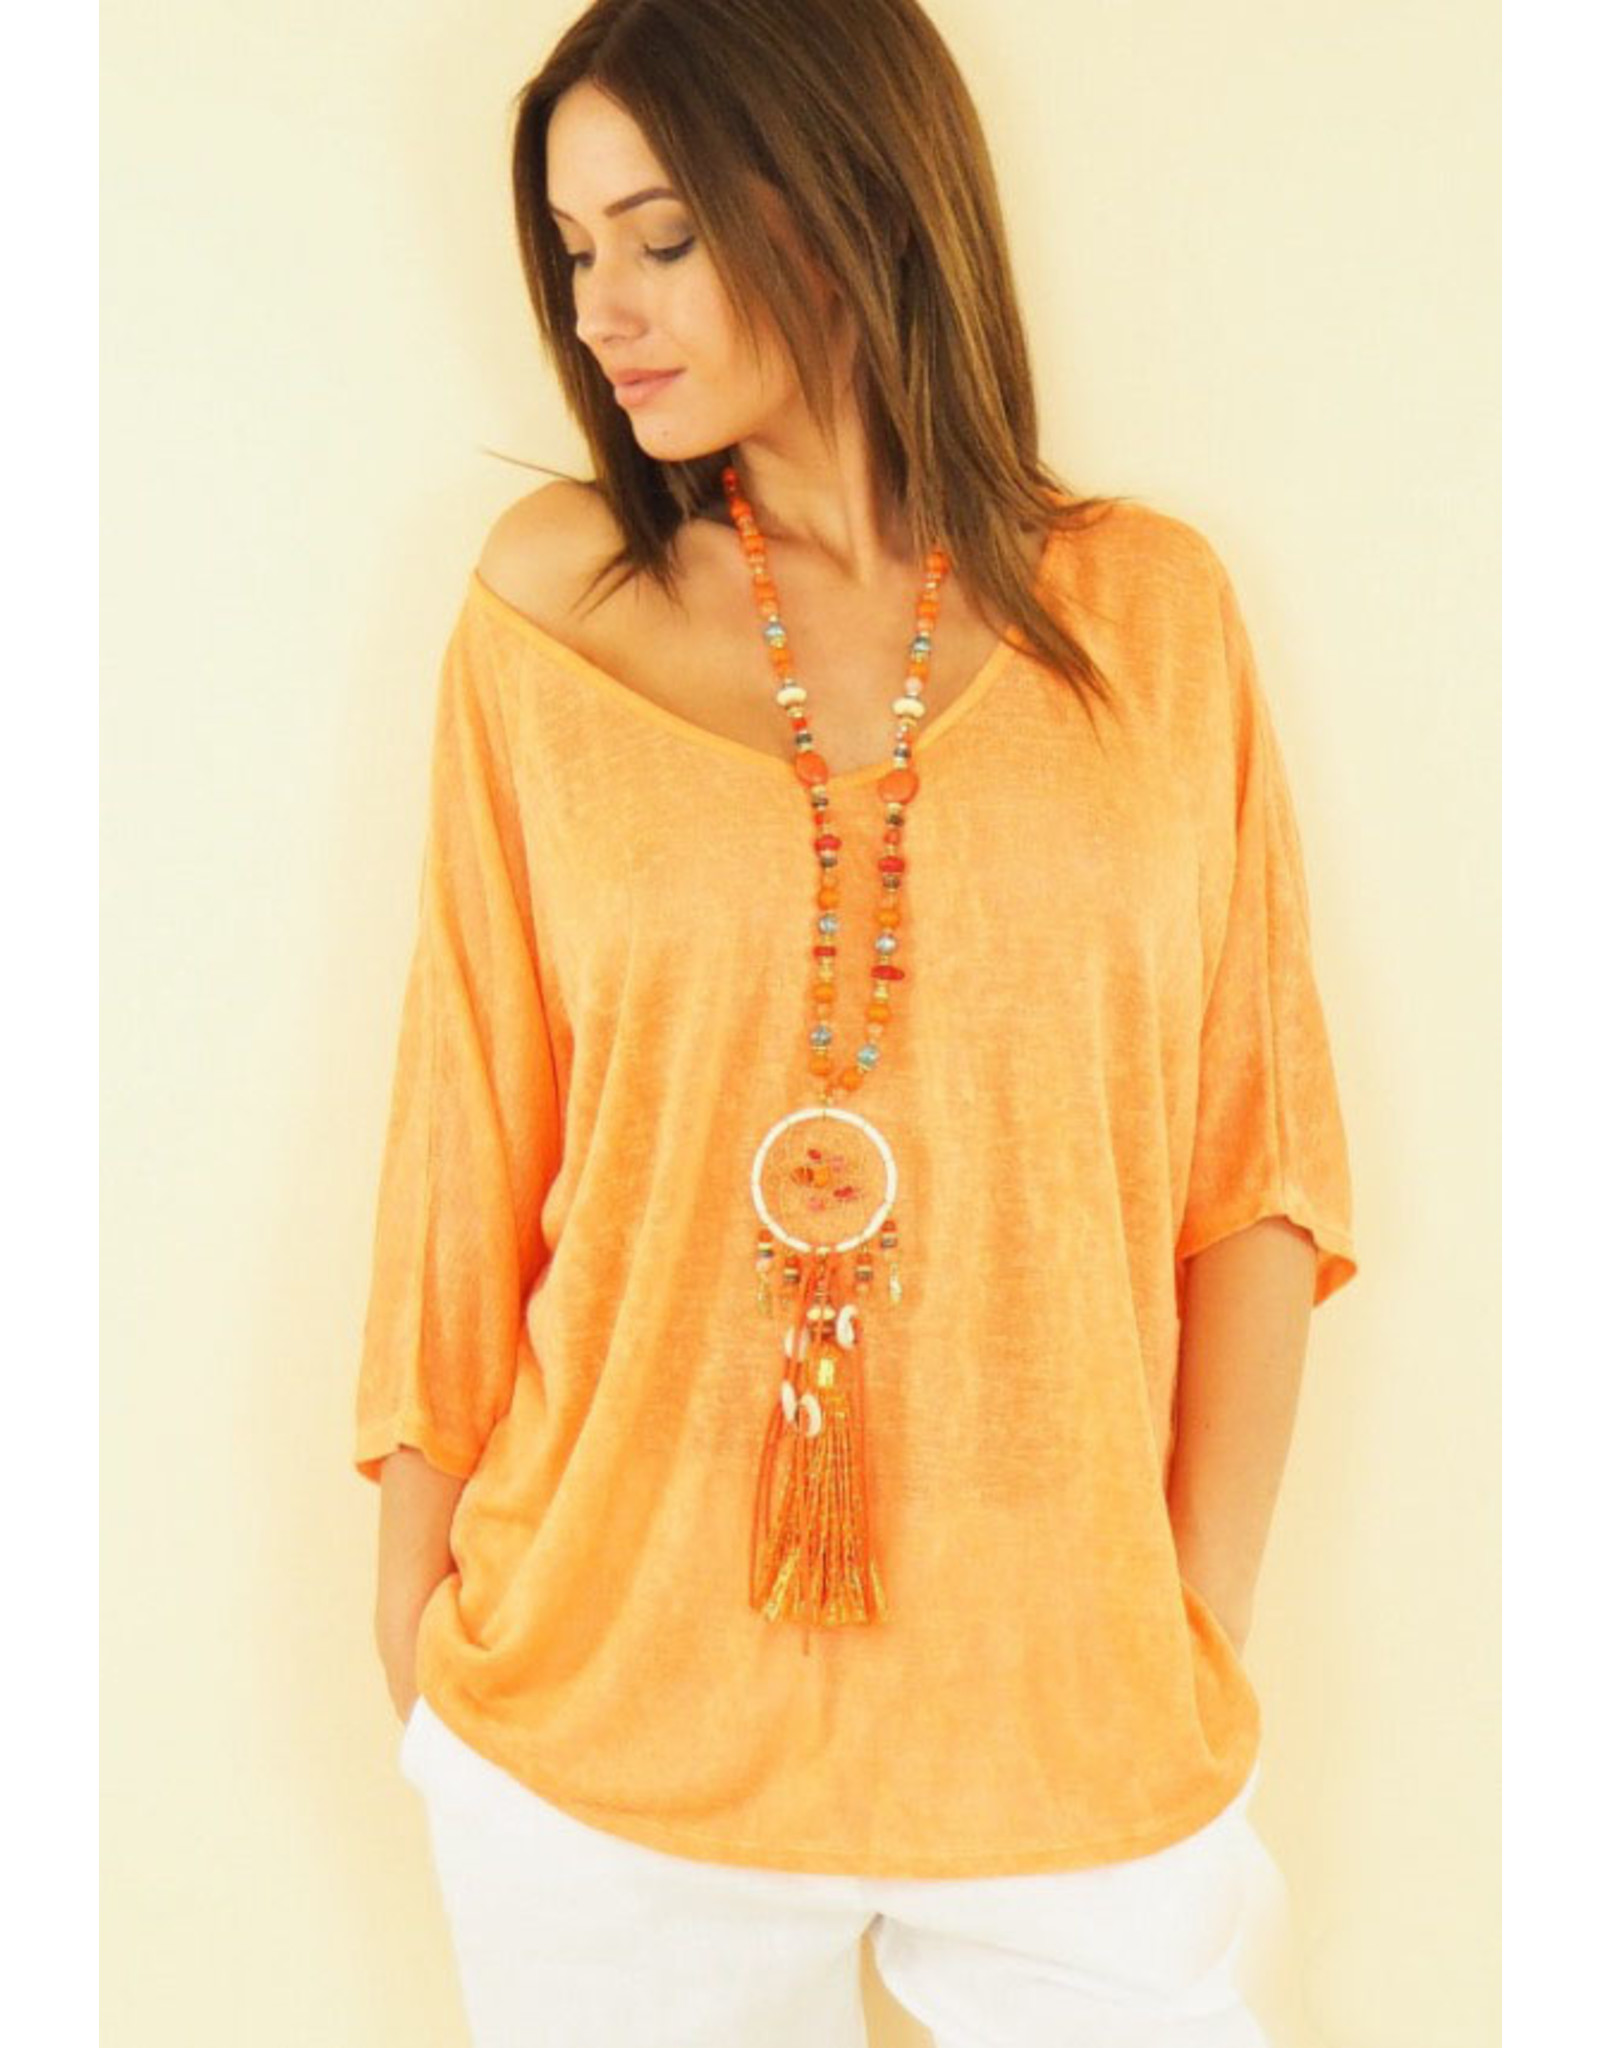 C. Z20 URIA TOP ORANGE